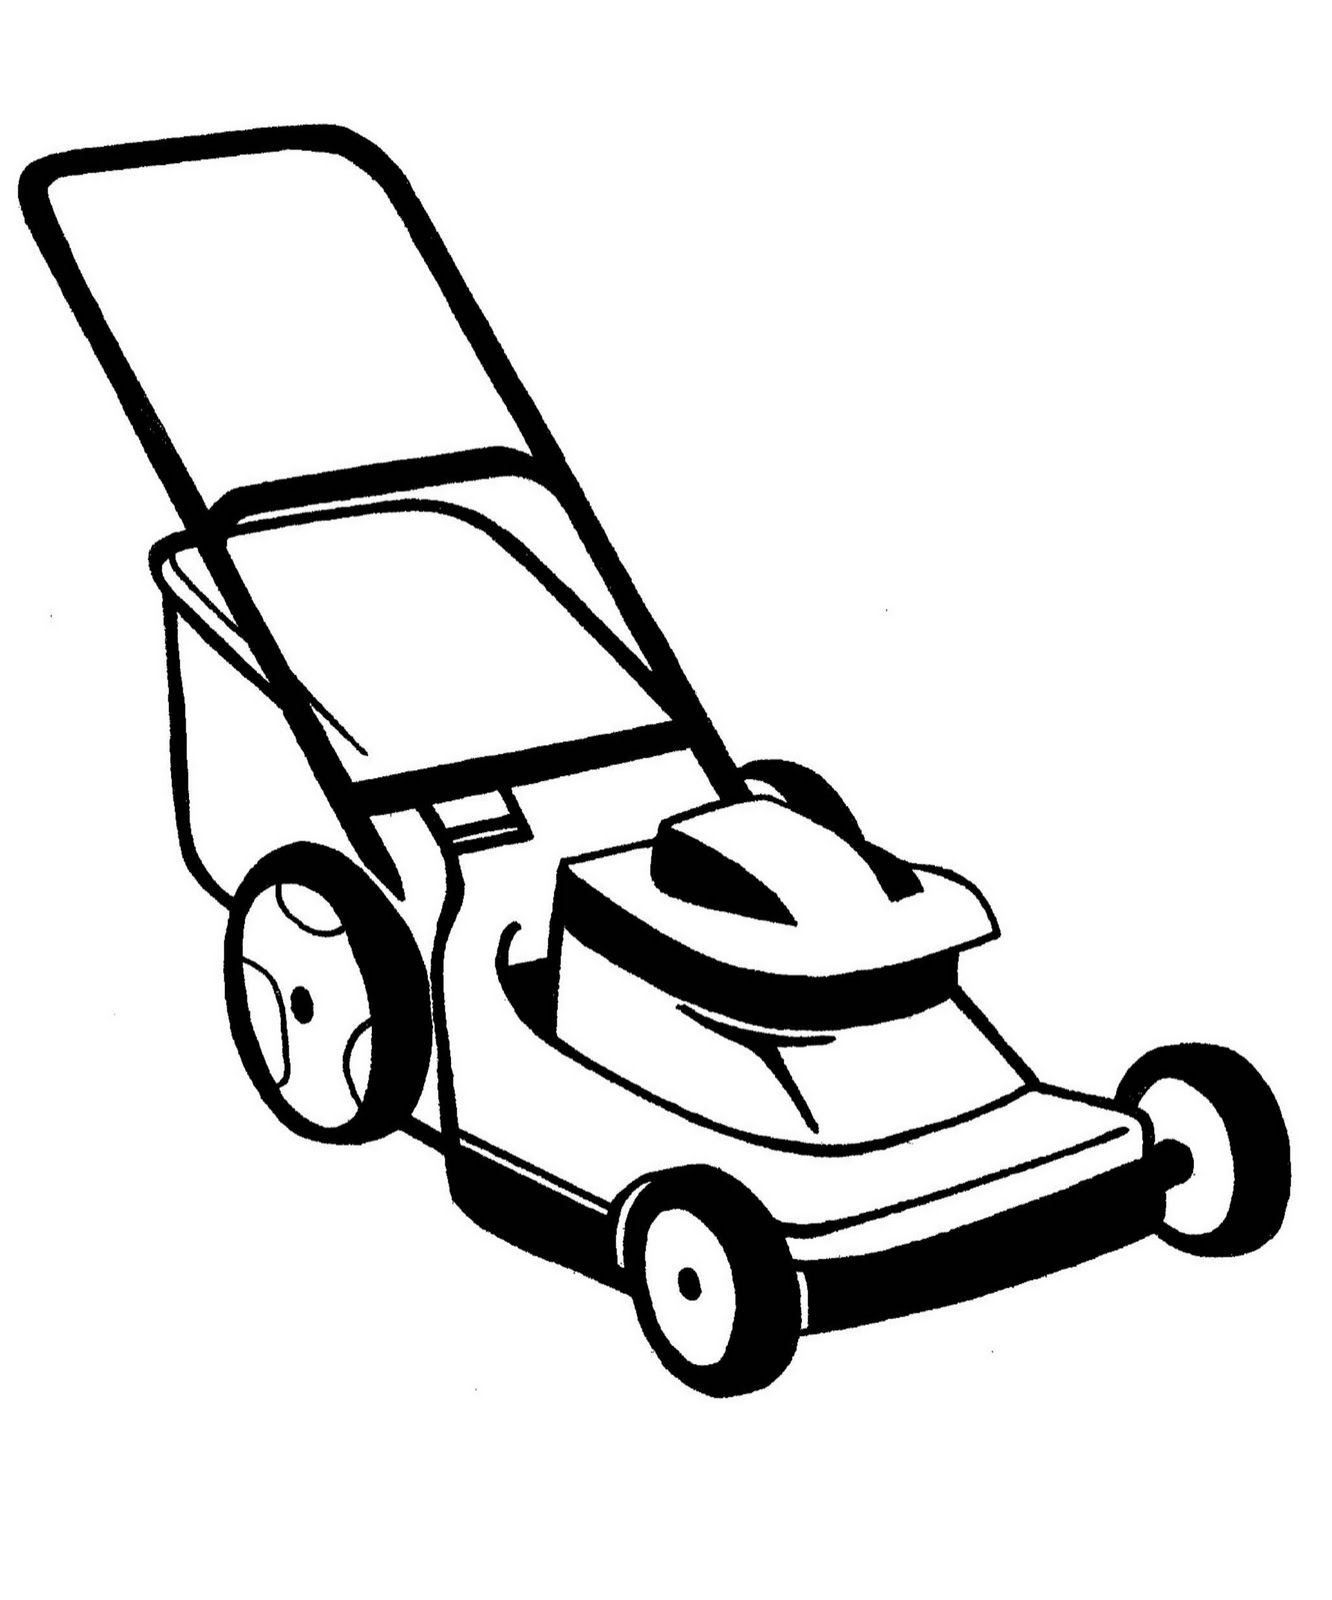 45+ Animated Lawn Mower Clipart